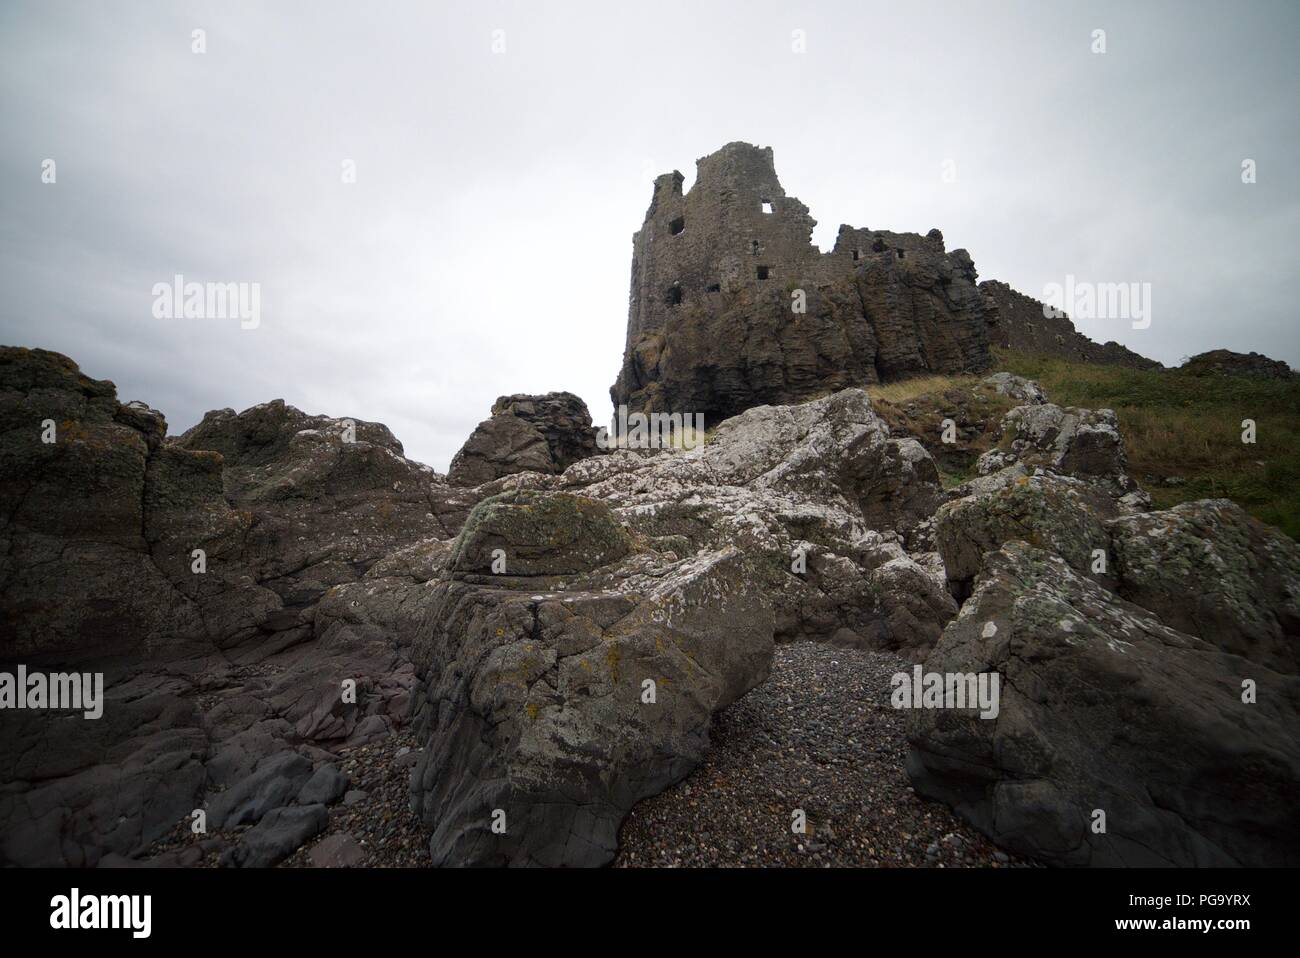 The ruins of an old castle on the edge of a cliff, Dunure Castle, Carrick Coast. (13th century castle ruins) - Stock Image